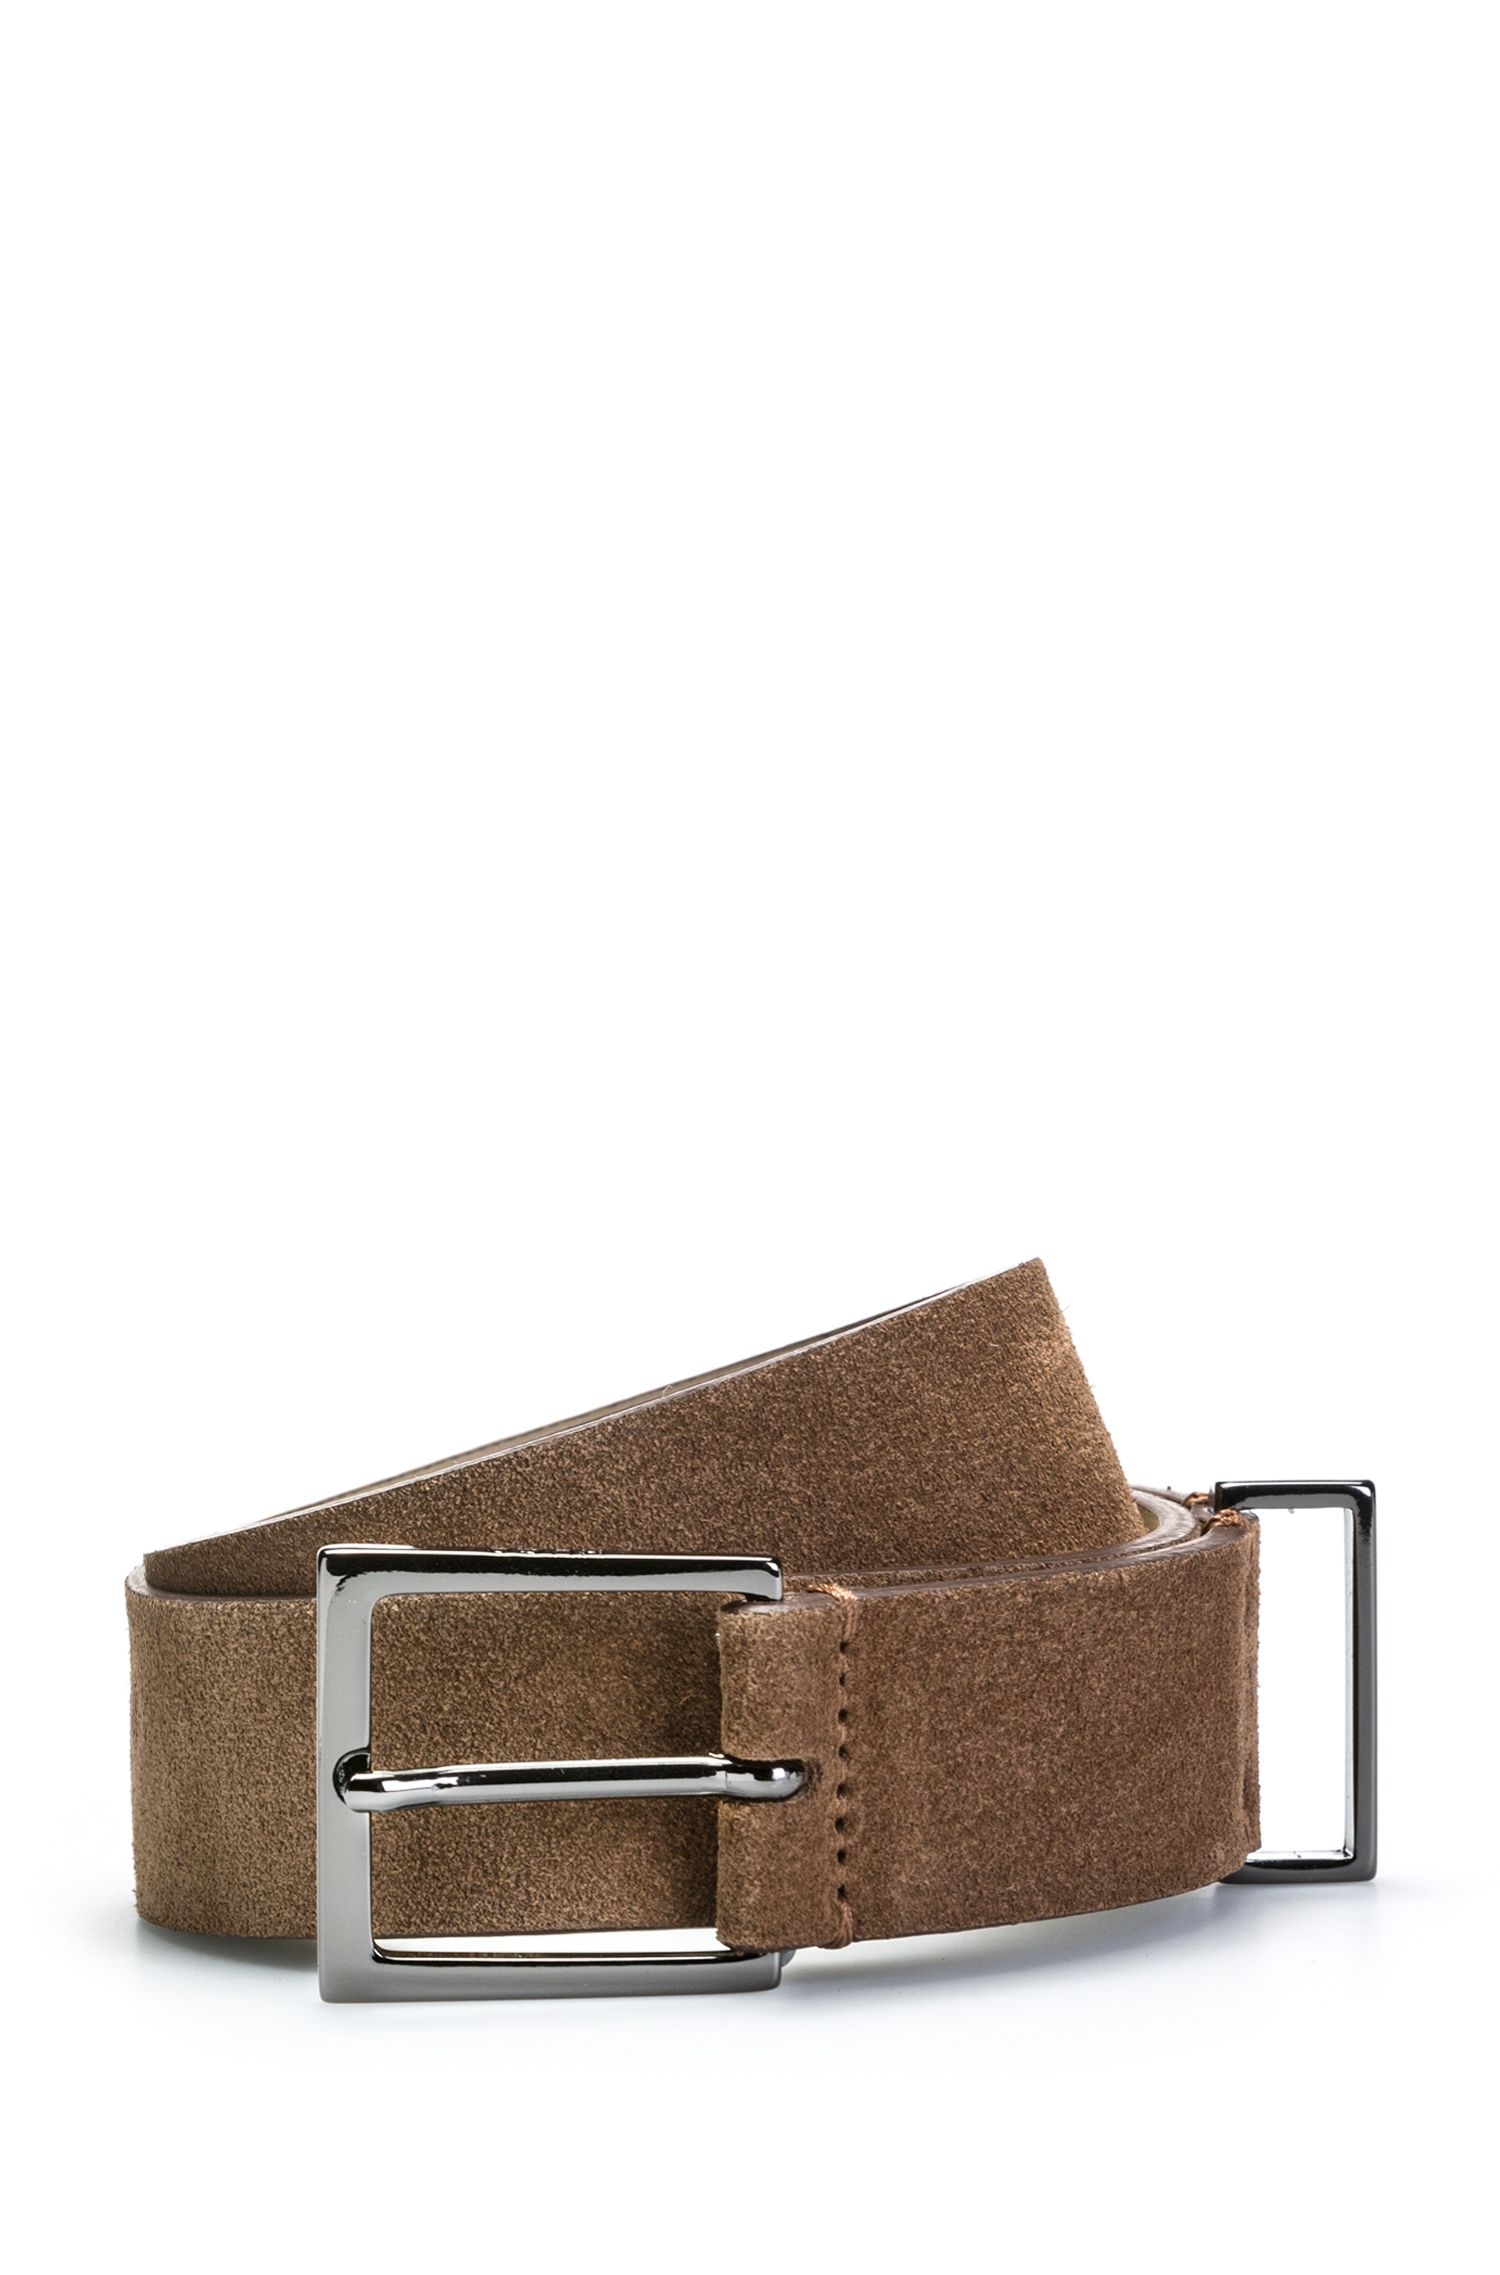 Suede leather belt with polished gunmetal hardware, Brown